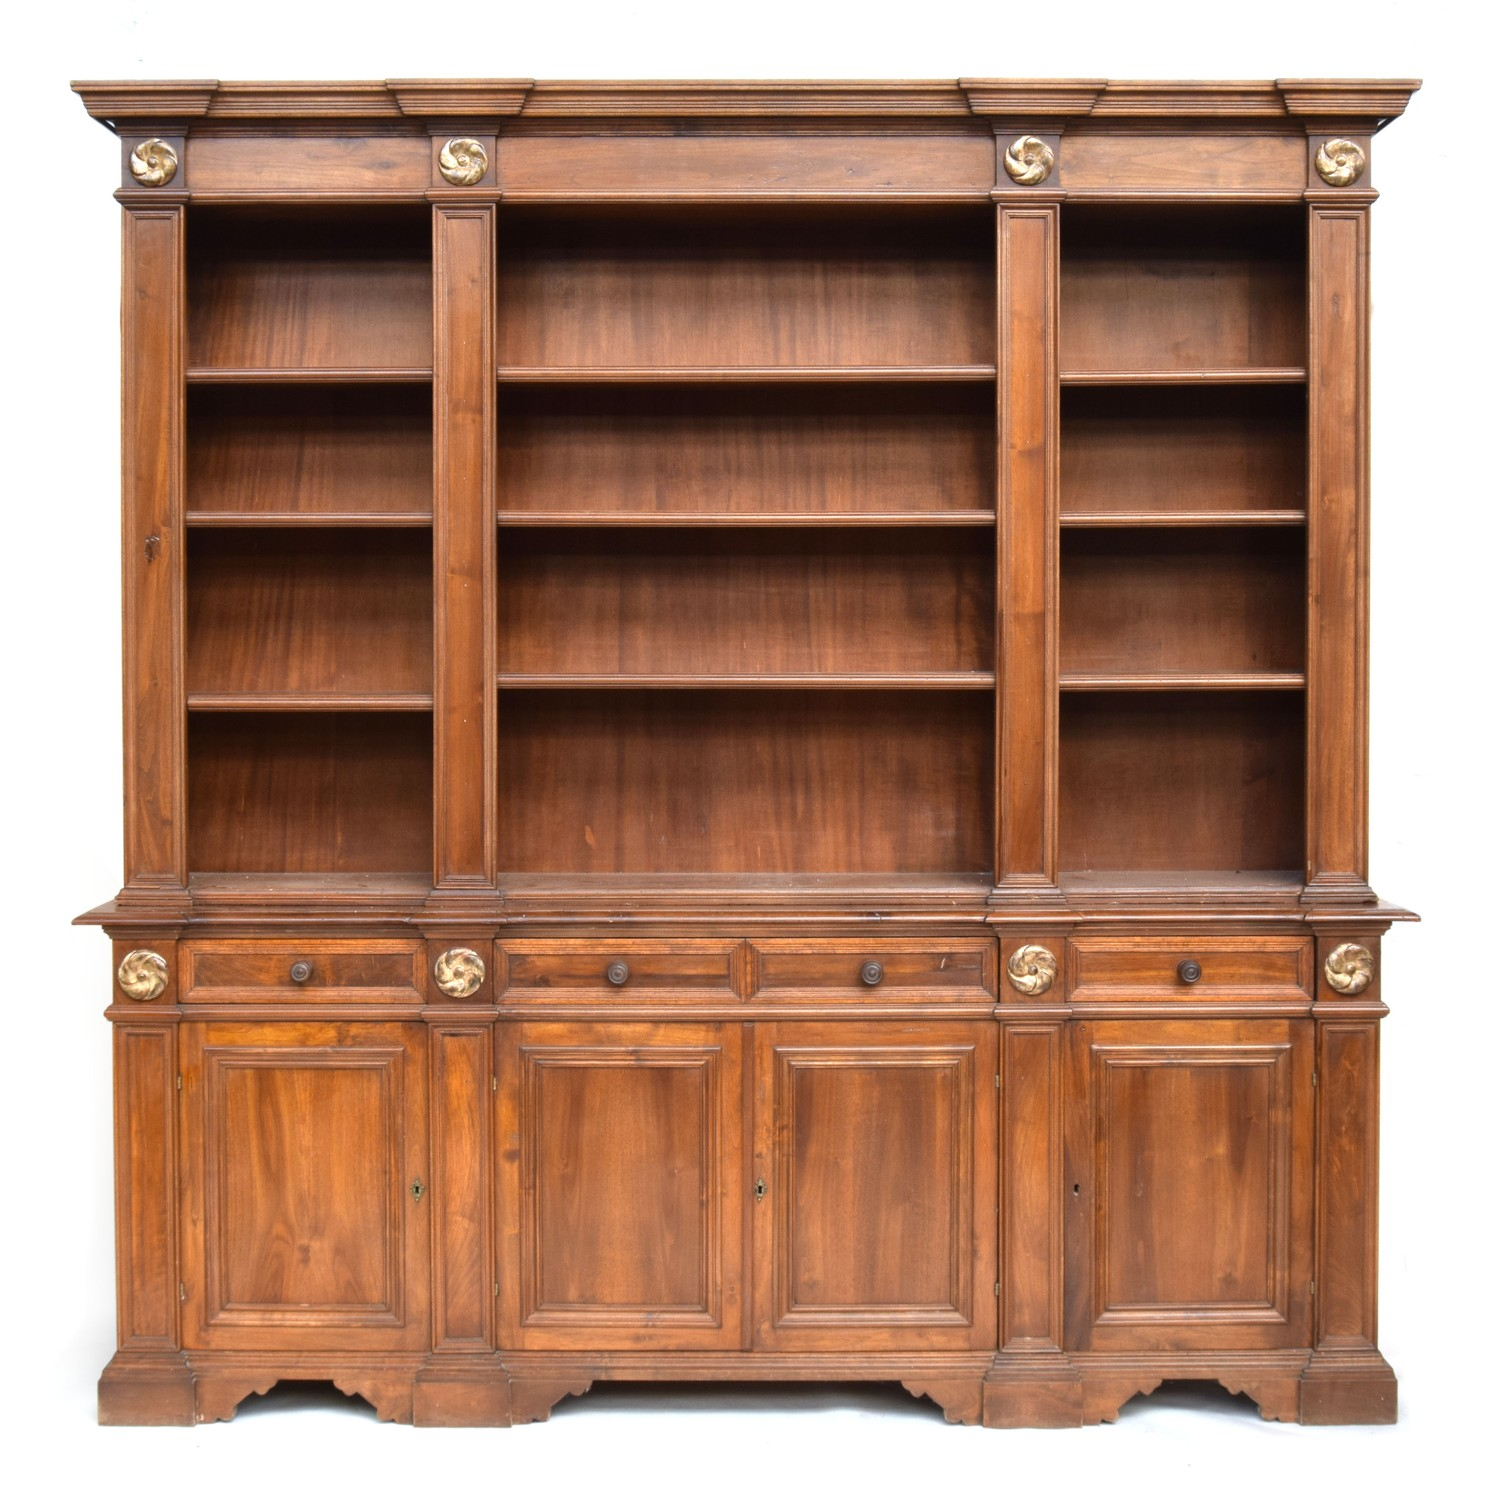 A substantial mahogany bookshelf, with three sections of adjustable shelves, applied gilt roundels